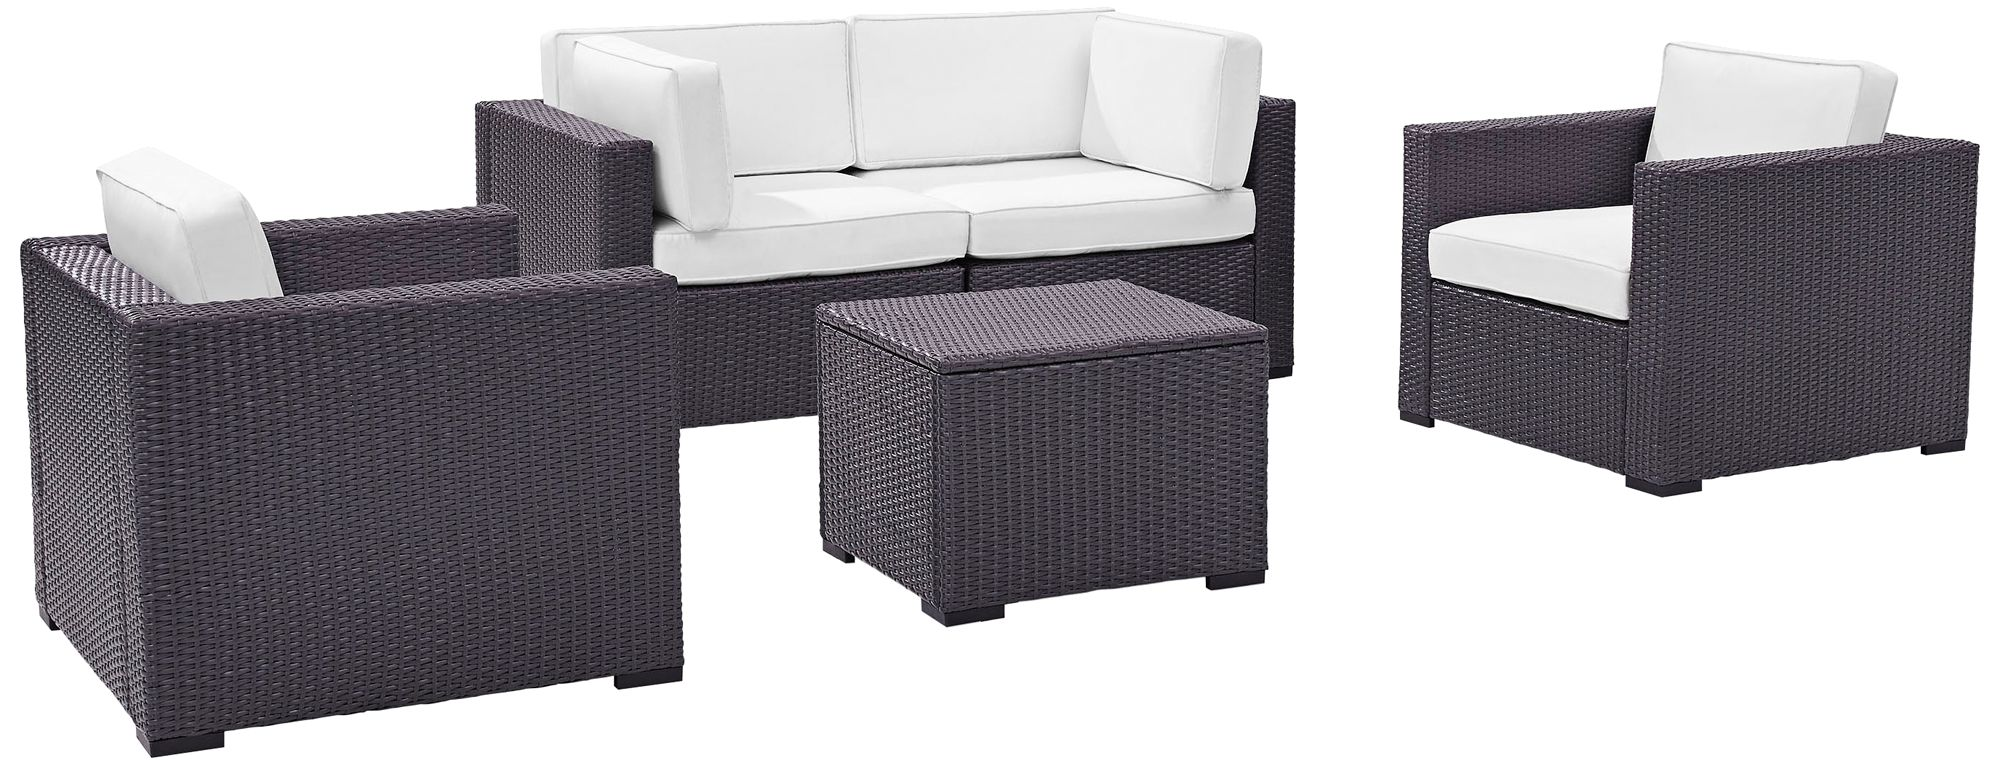 biscayne white fabric 5 piece 4 seat outdoor patio set